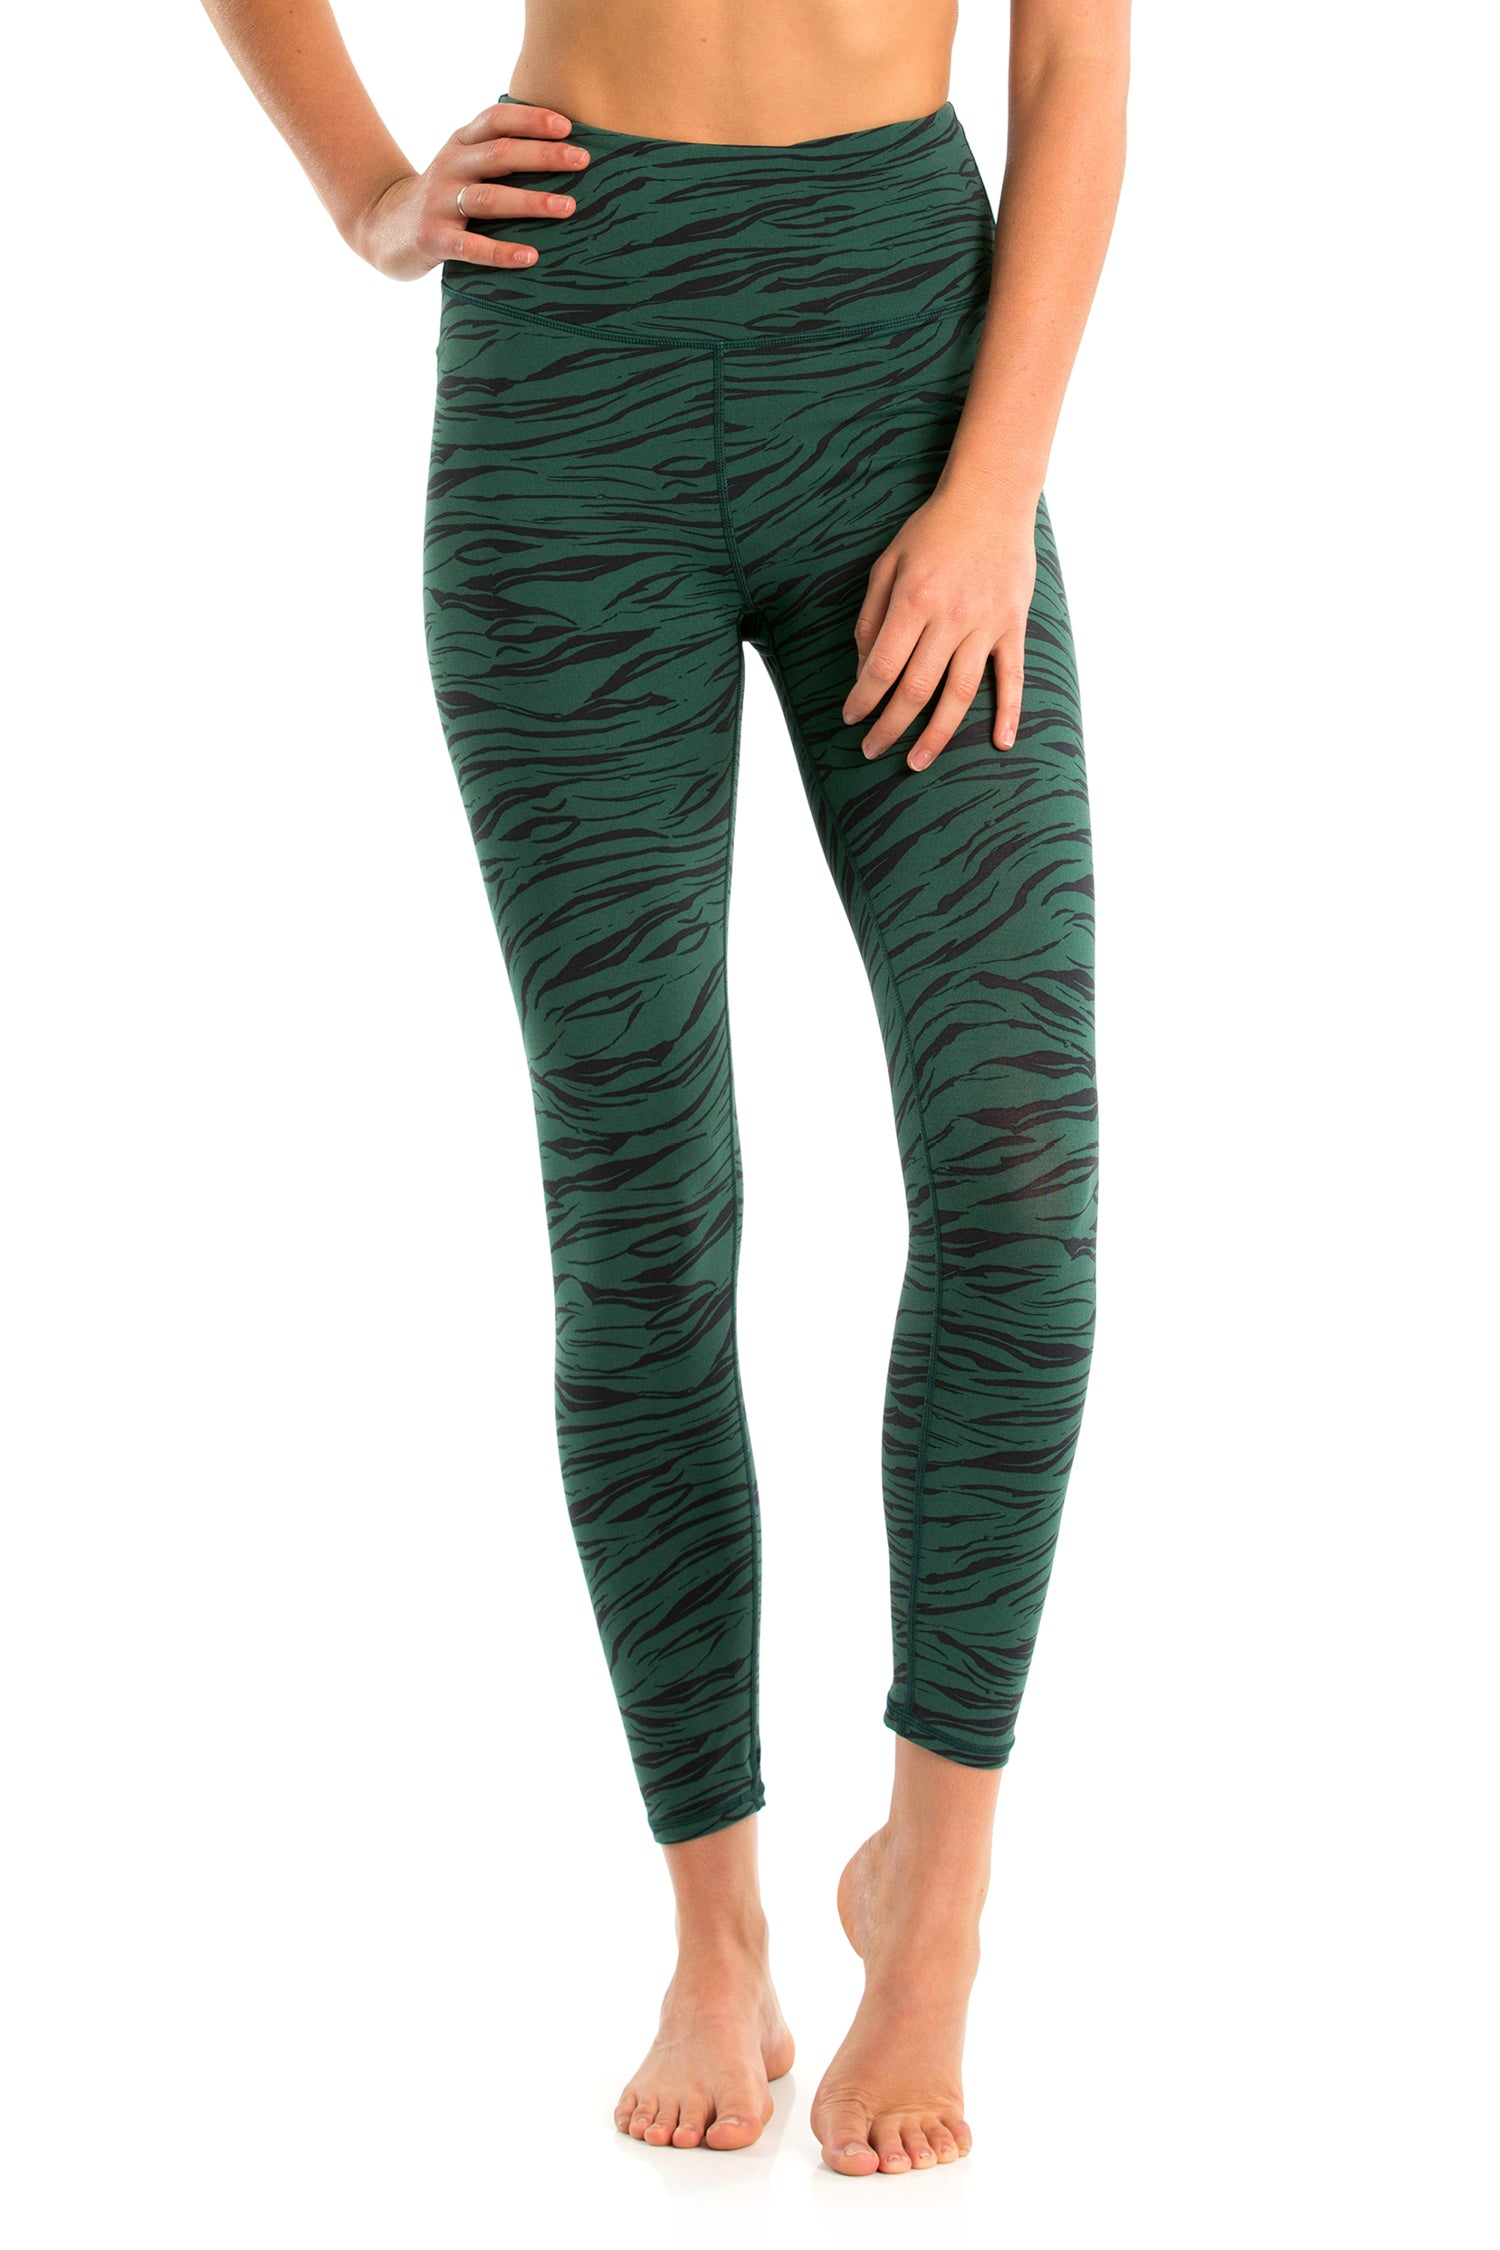 Tiger Tribe Leggings